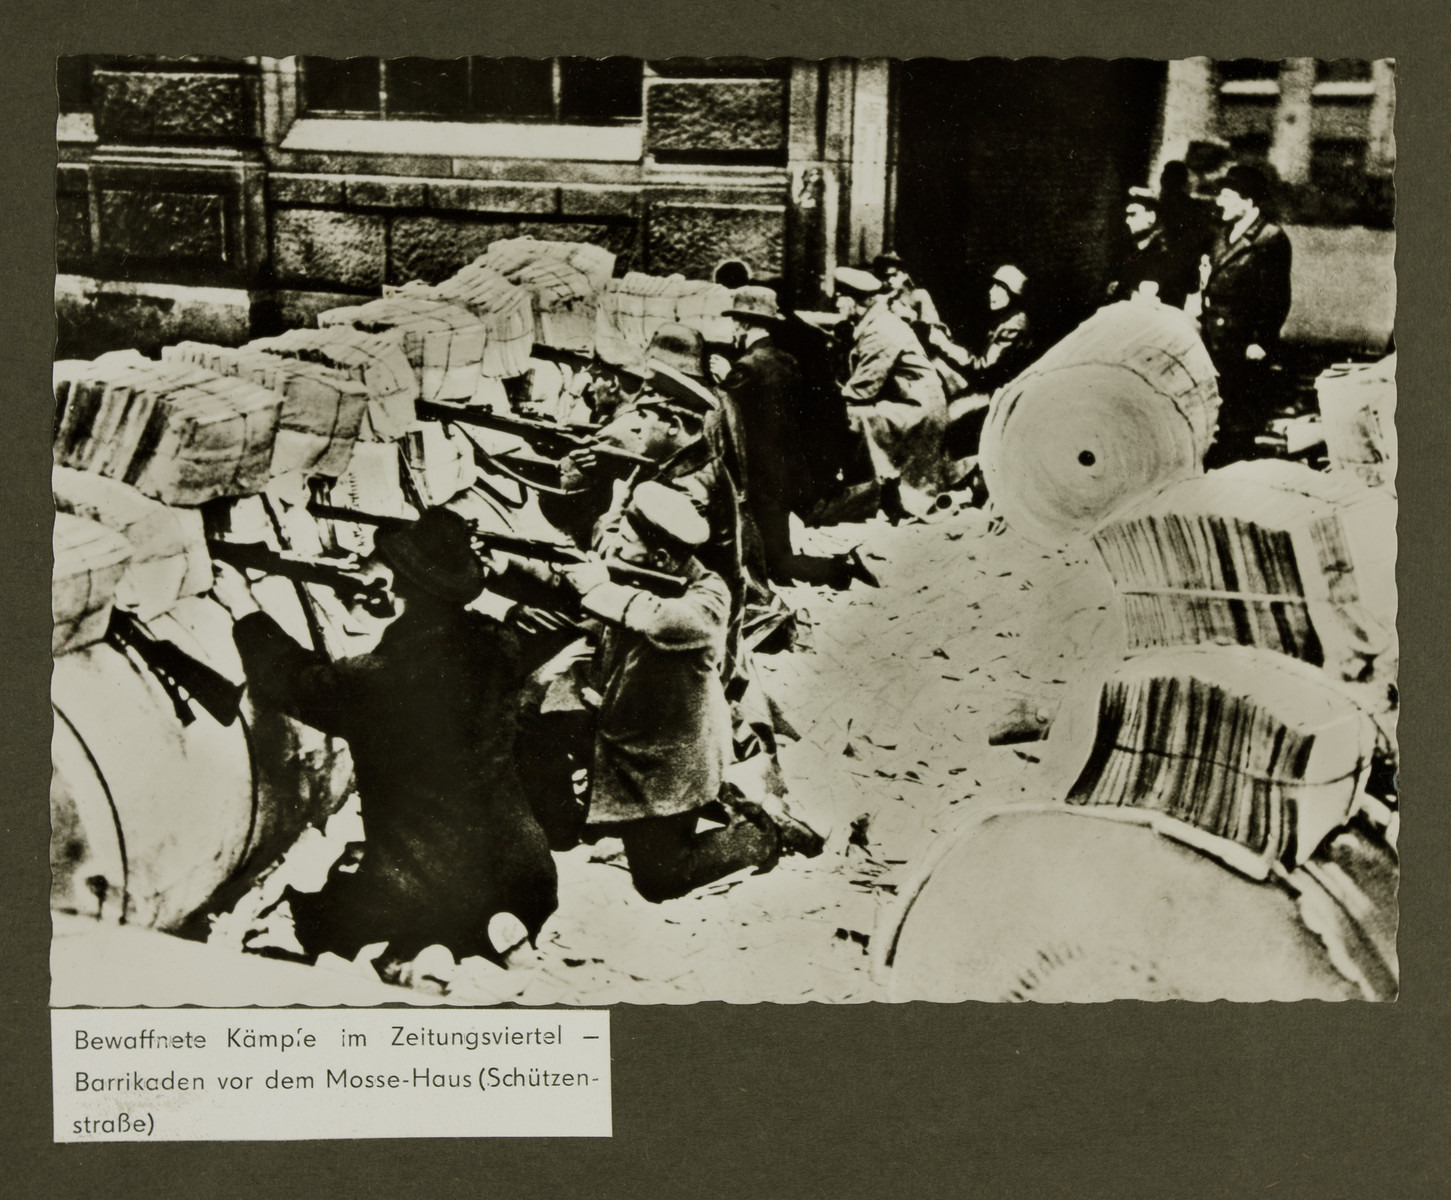 """Armed Spartacists barricaded behind stacks of newspapers during the Spartacist Uprising.  The text reads: """"Armed clashes in the newspaper quarter. Barricades in front of the Mosse - Haus (Schuetzenstrasse)"""""""